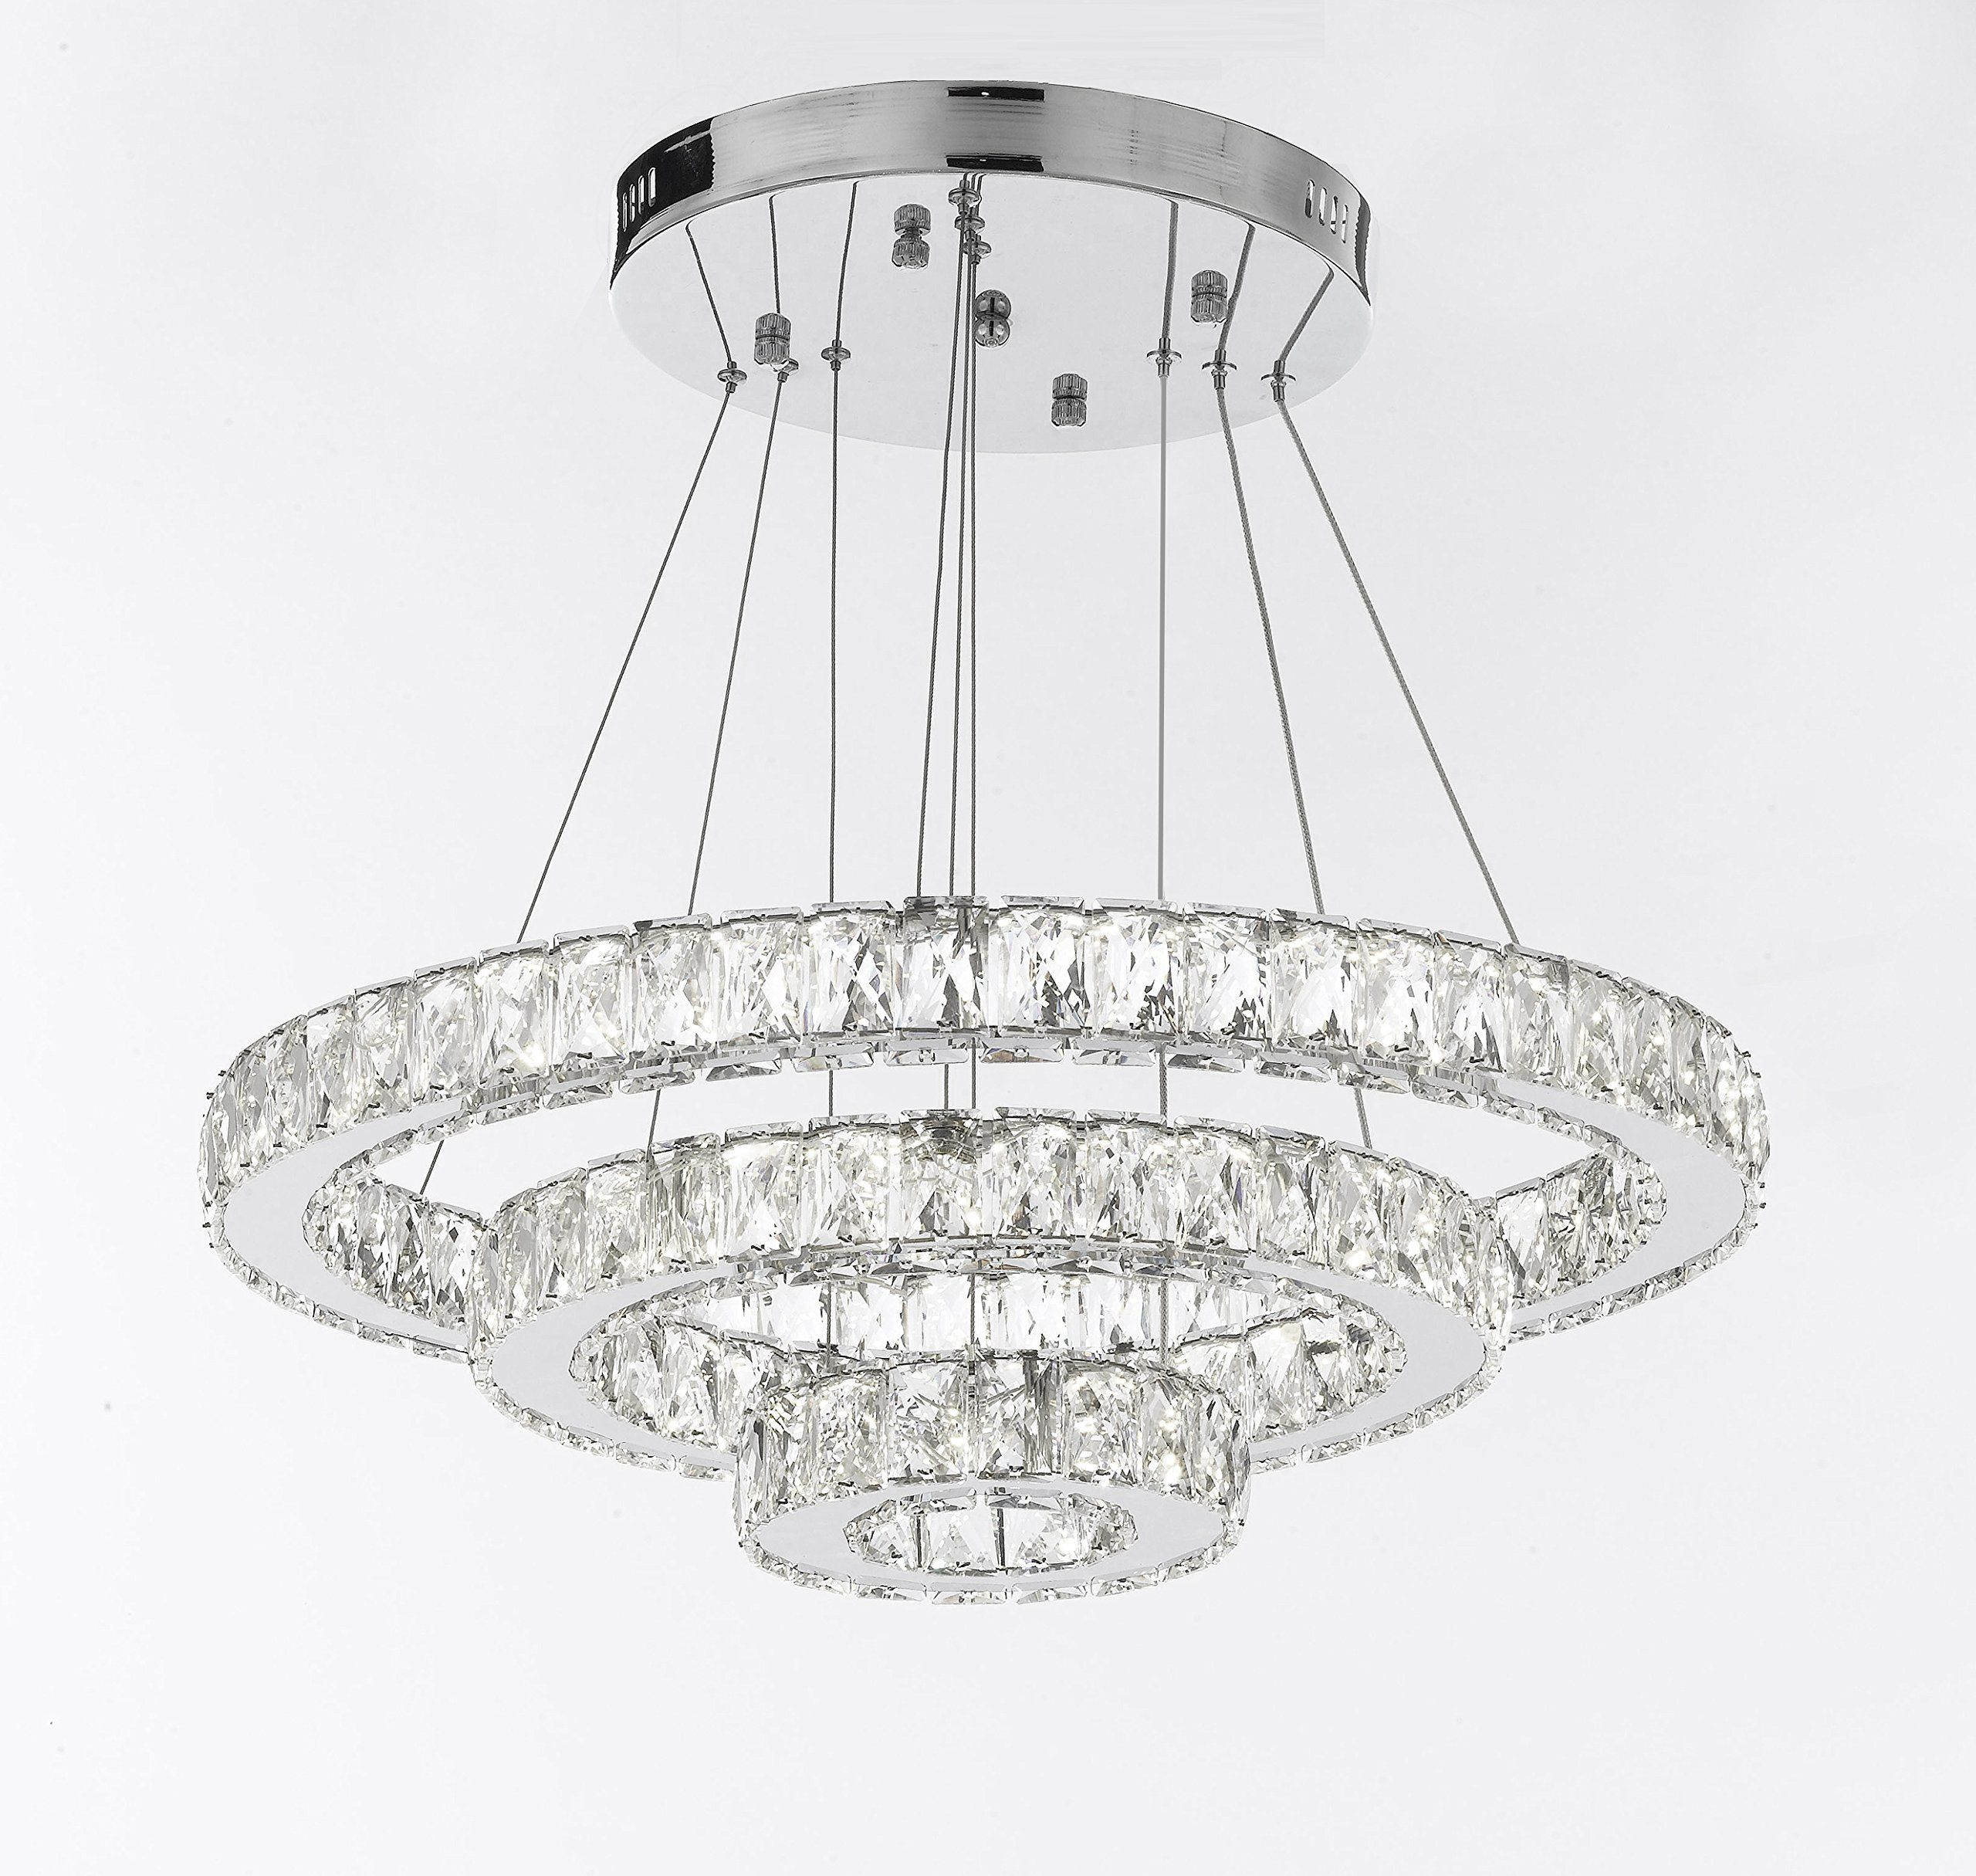 Crystal Elipse 3 Ring Chandelier Led Chandeliers Modern Contemporary Lighting 35a Wide W Adjustable Cable Ring Chandelier Led Chandelier Modern Chandelier